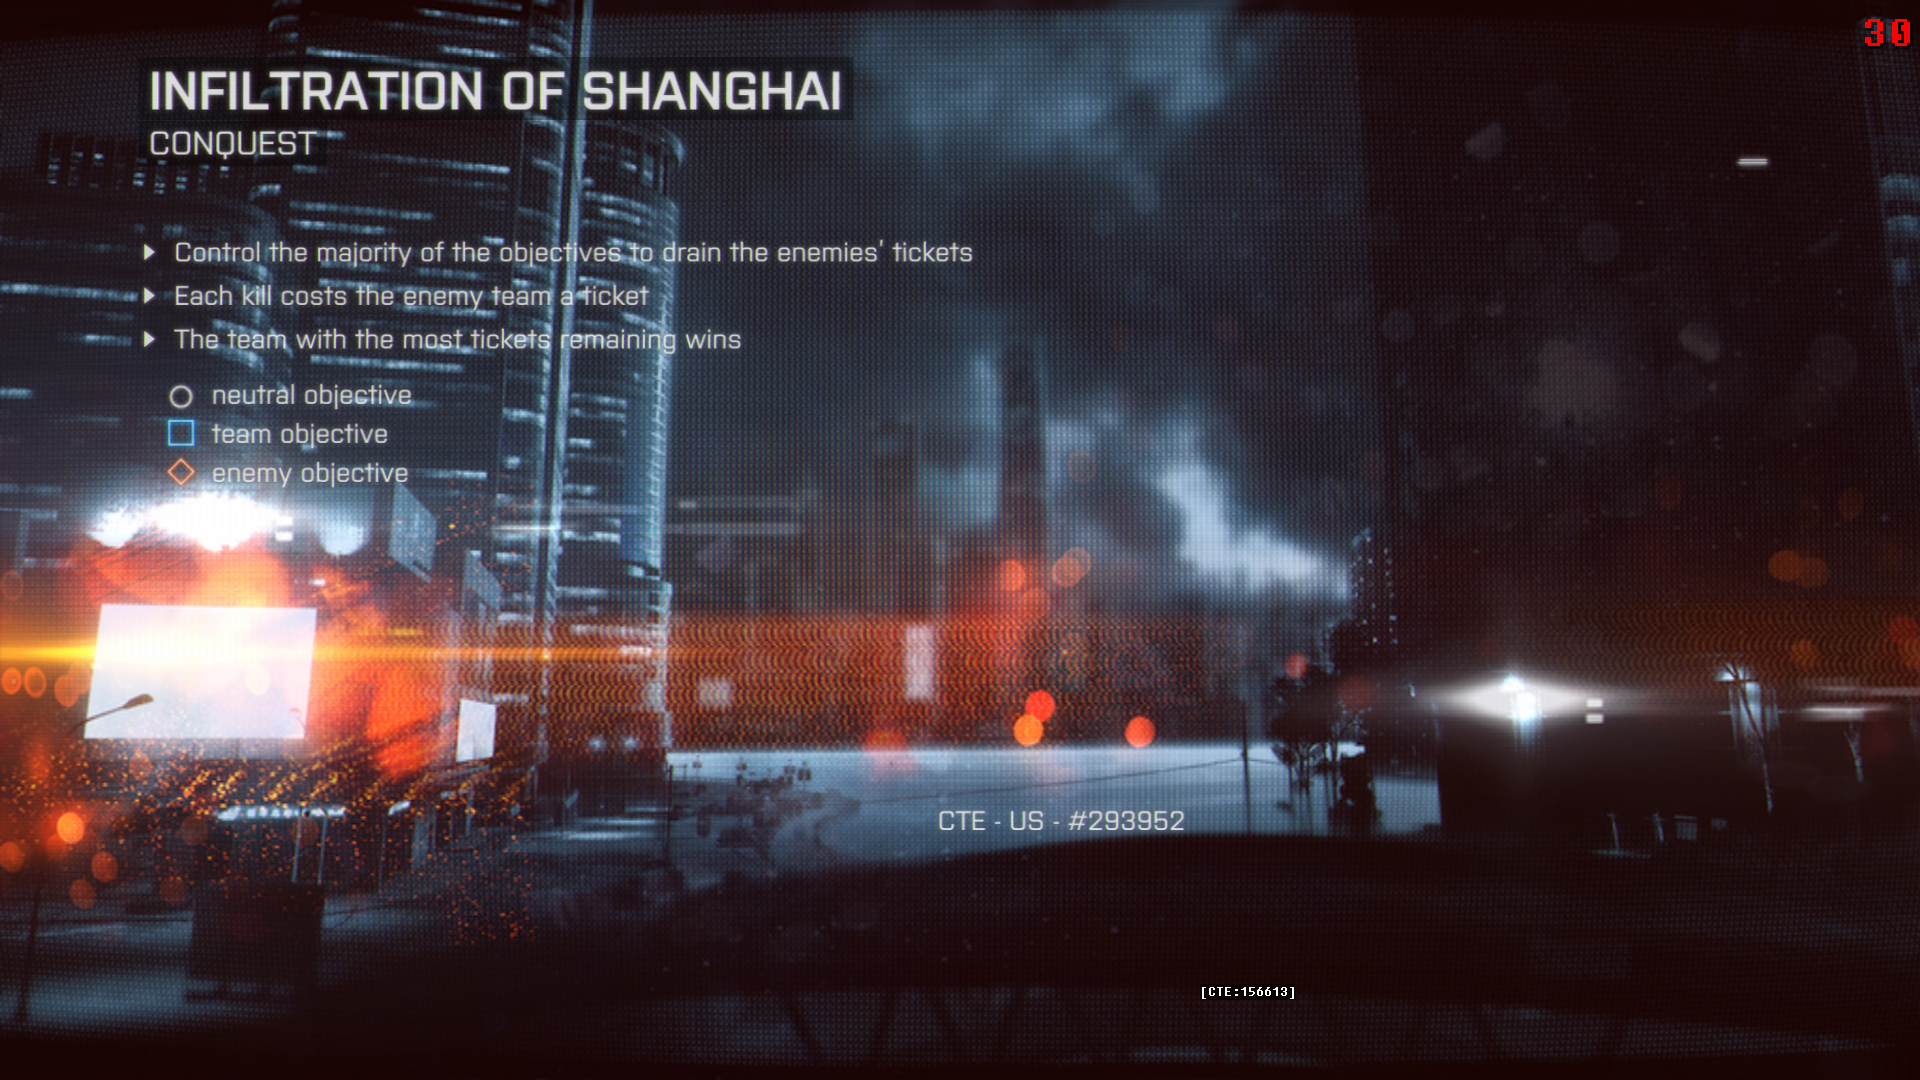 Infiltration of Shanghai